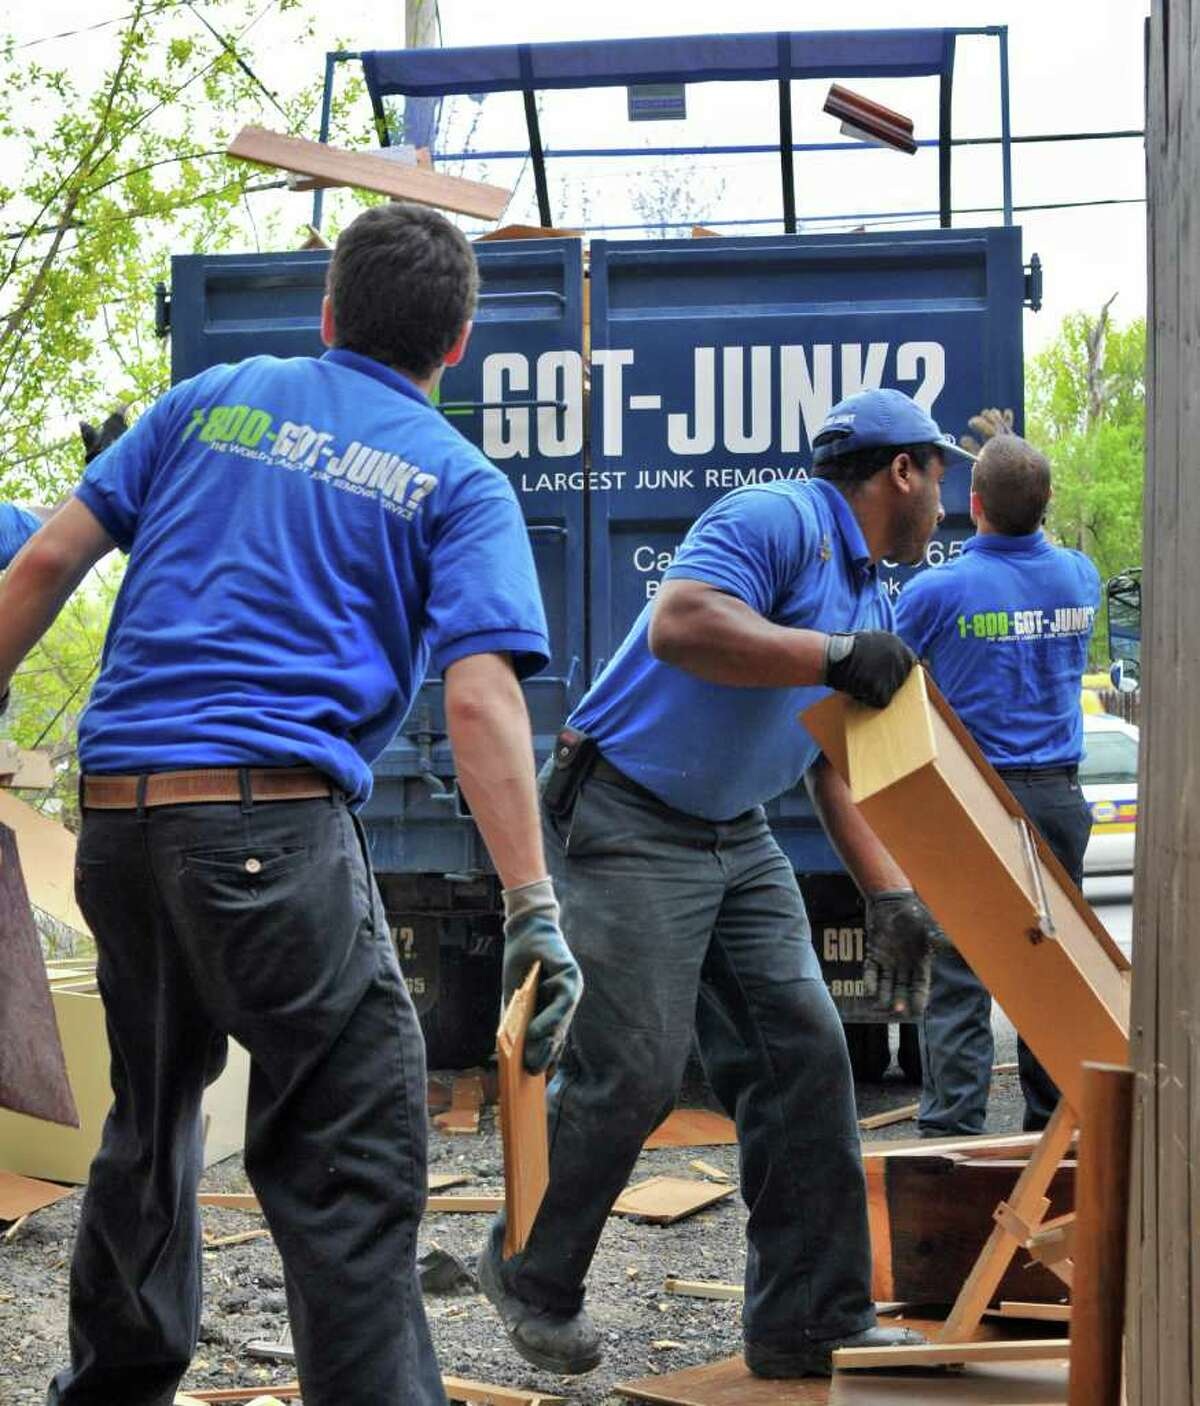 1-800-GOTJUNK workers remove old furnishings for the Addictions Care Center of Albany, making way for Rent-A-Center's donation of $15,000 worth of new furniture on Tuesday, May 3, 2011. (John Carl D'Annibale / Times Union)